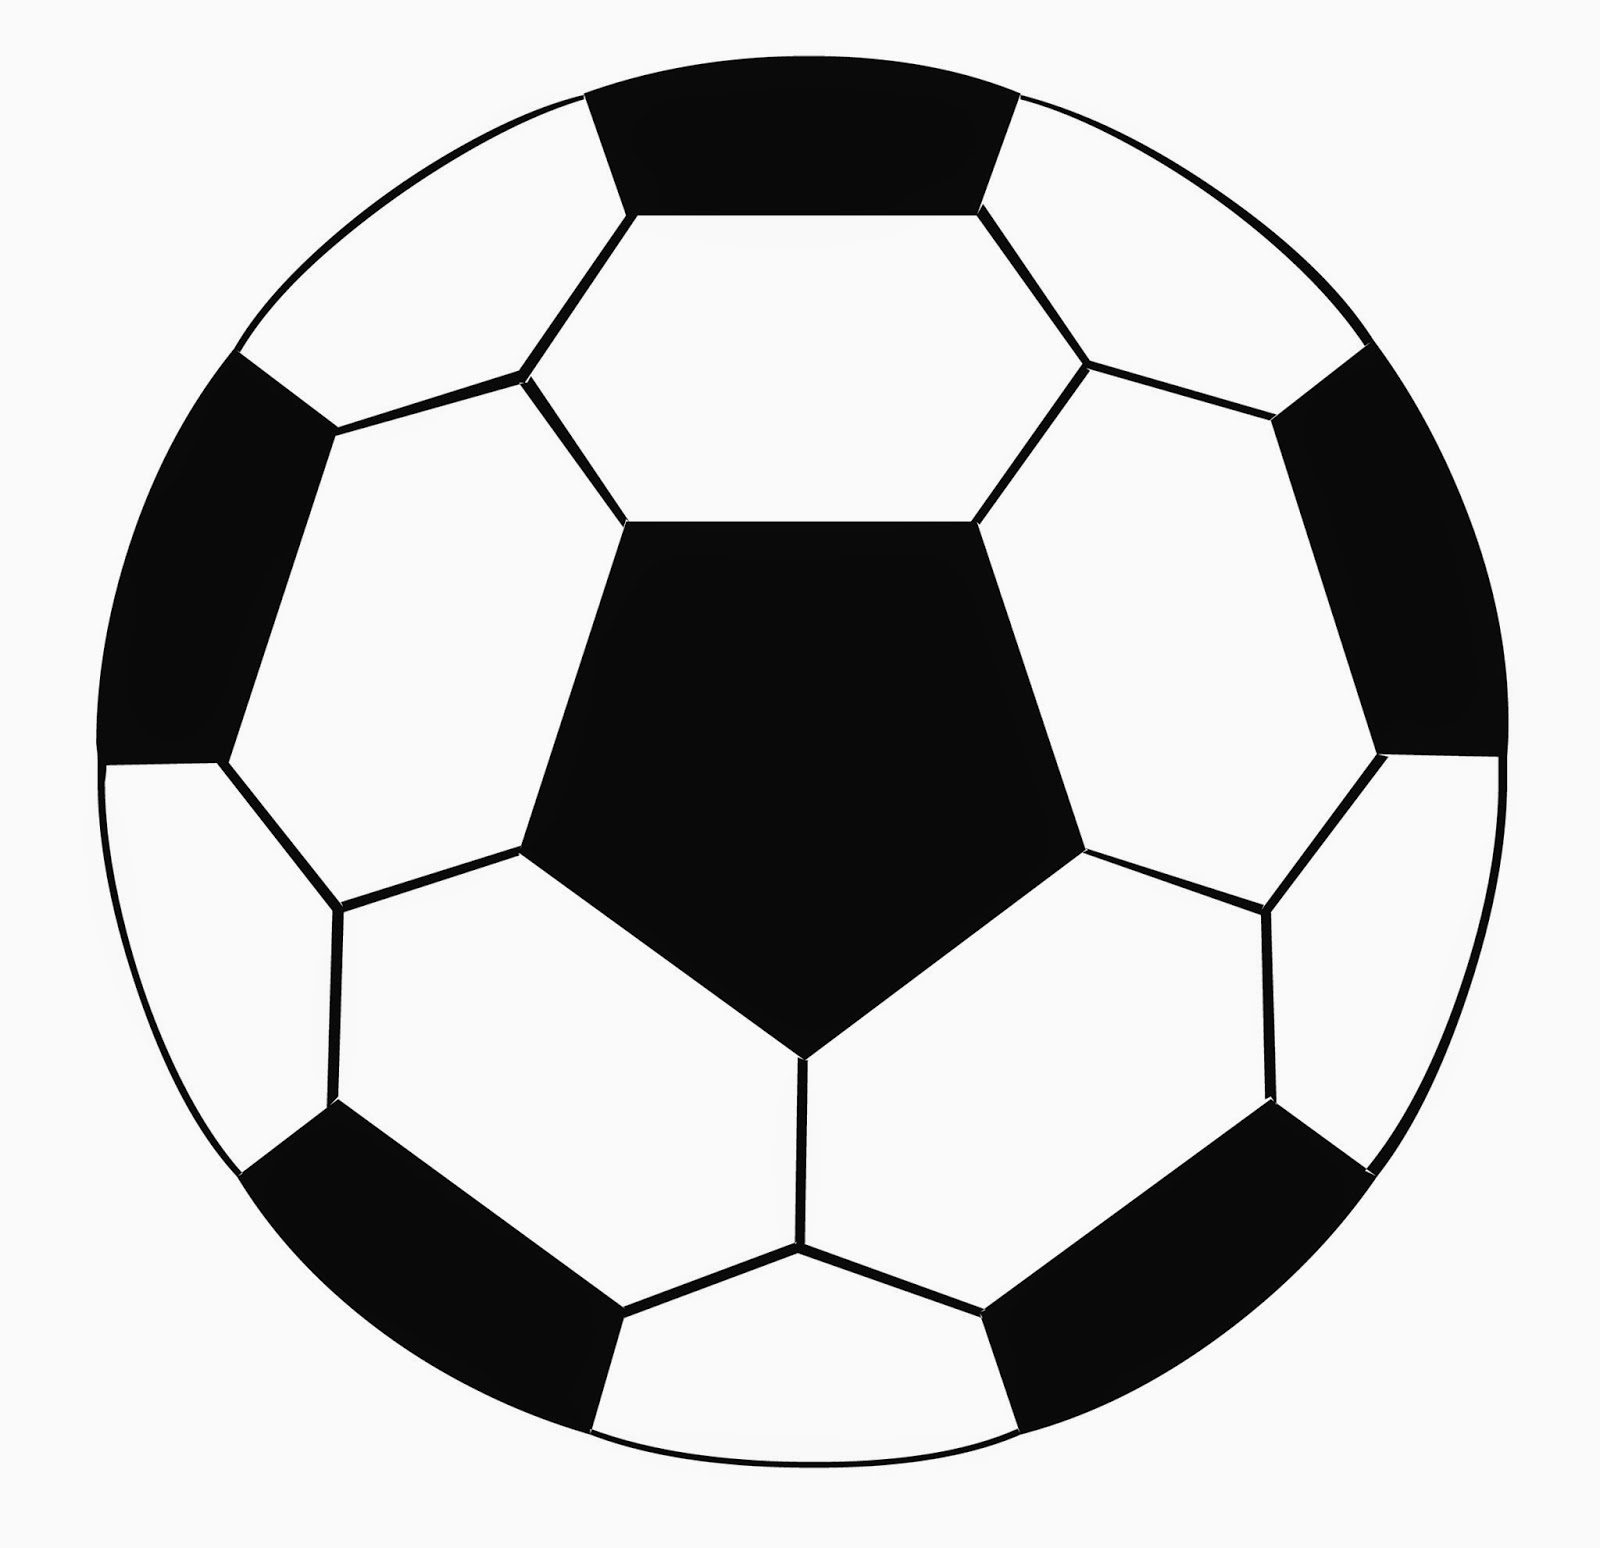 Adaptable image with soccer ball printable